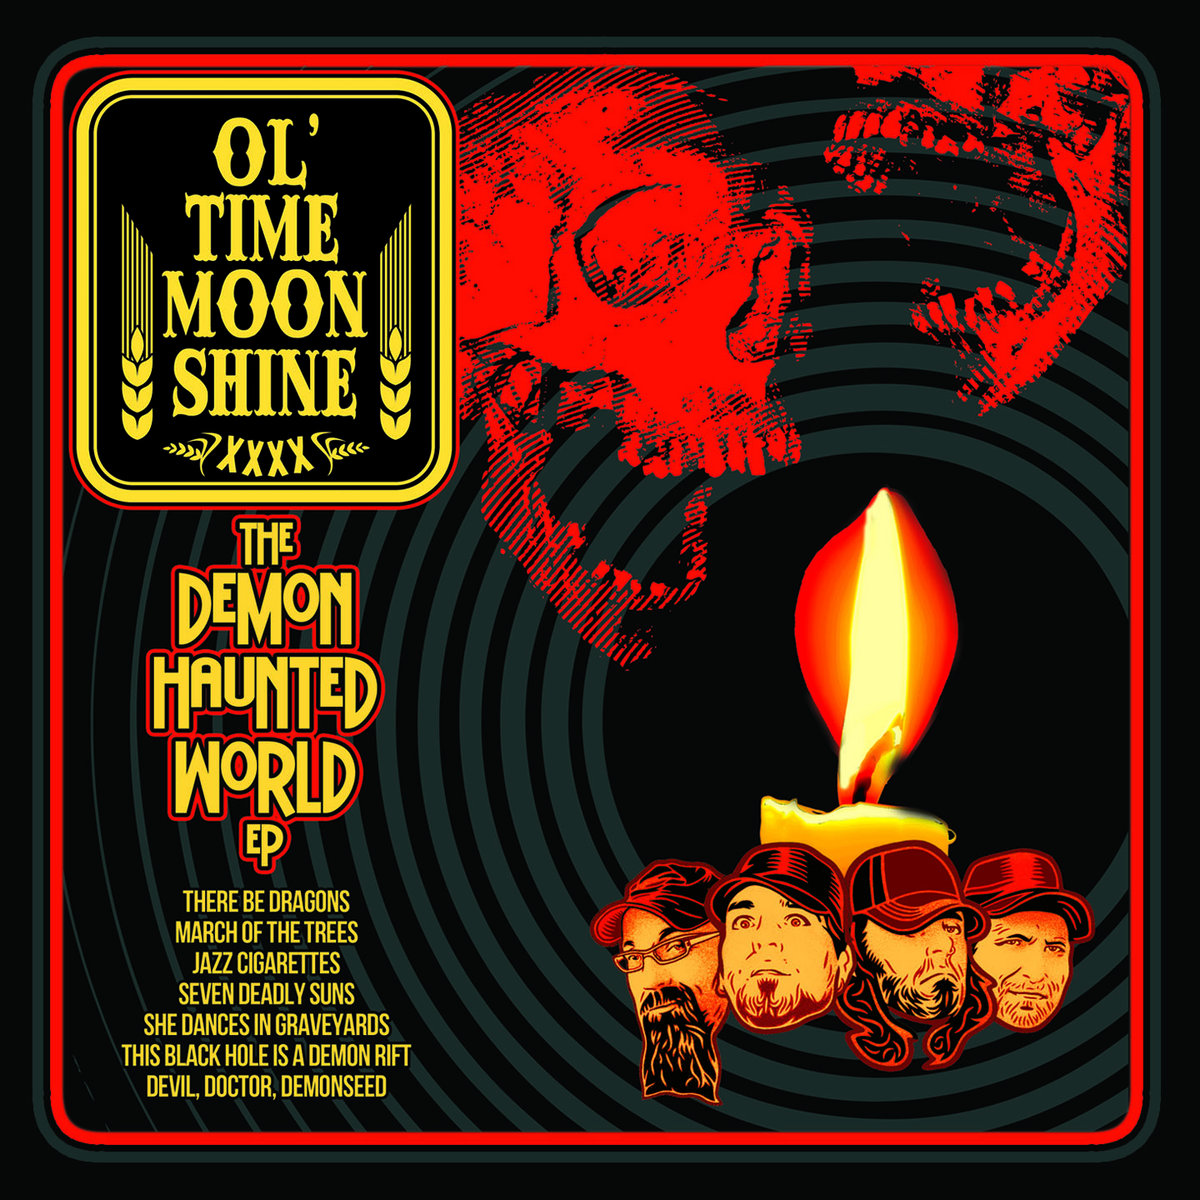 The Demon Haunted World | Ol' Time Moonshine